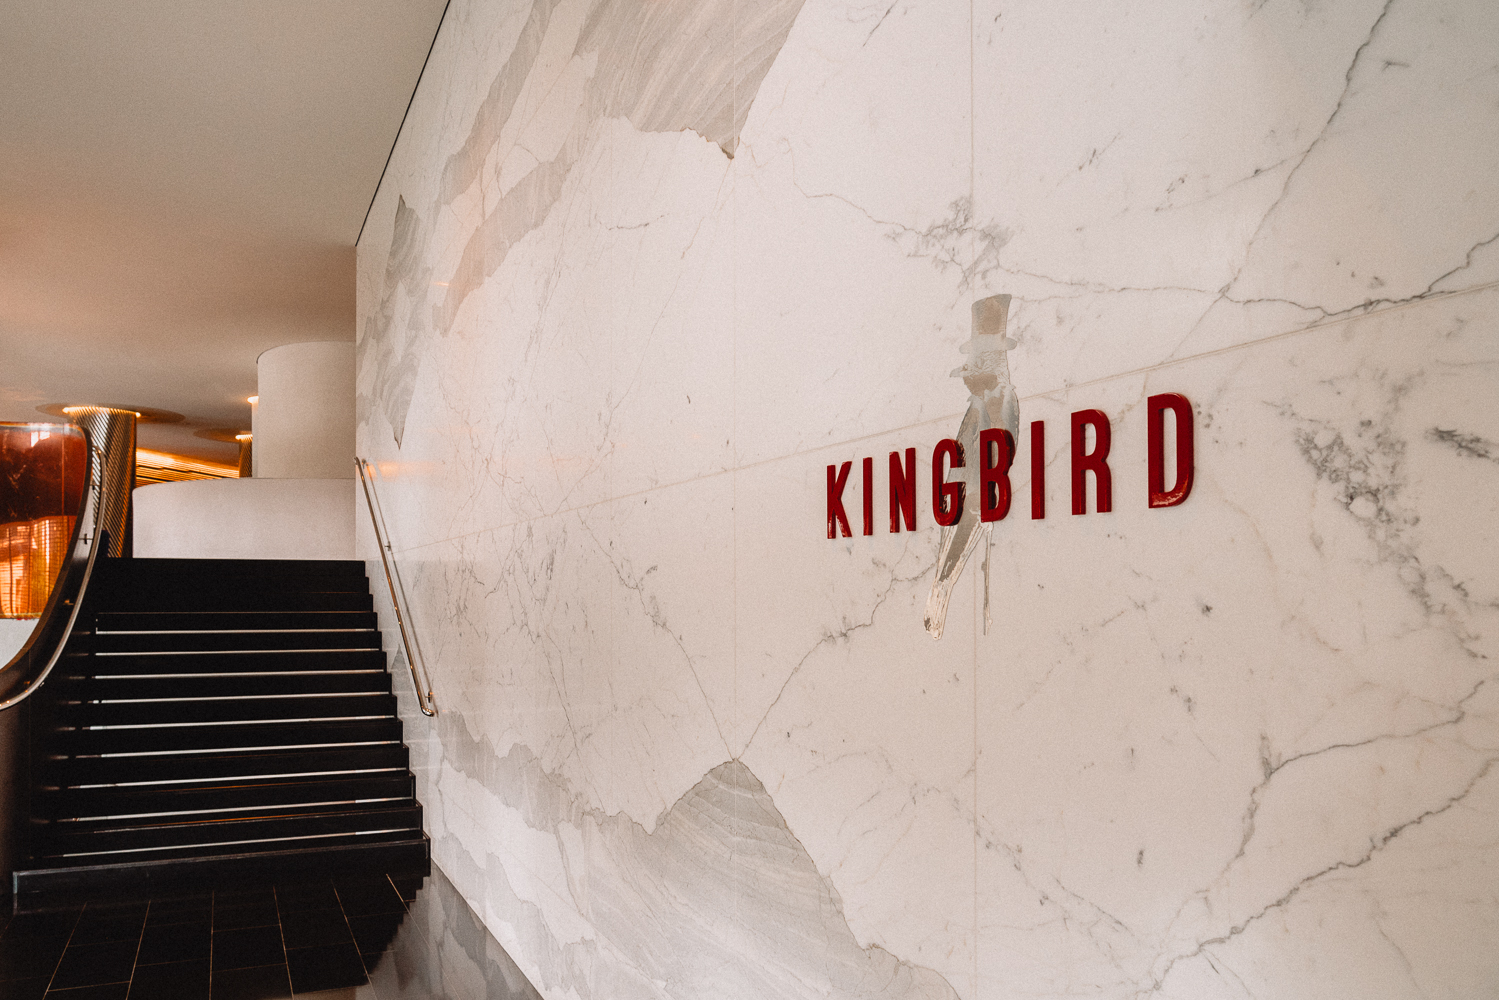 The entrance to Kingbird, the restaurant just off the lobby of the Watergate Hotel.